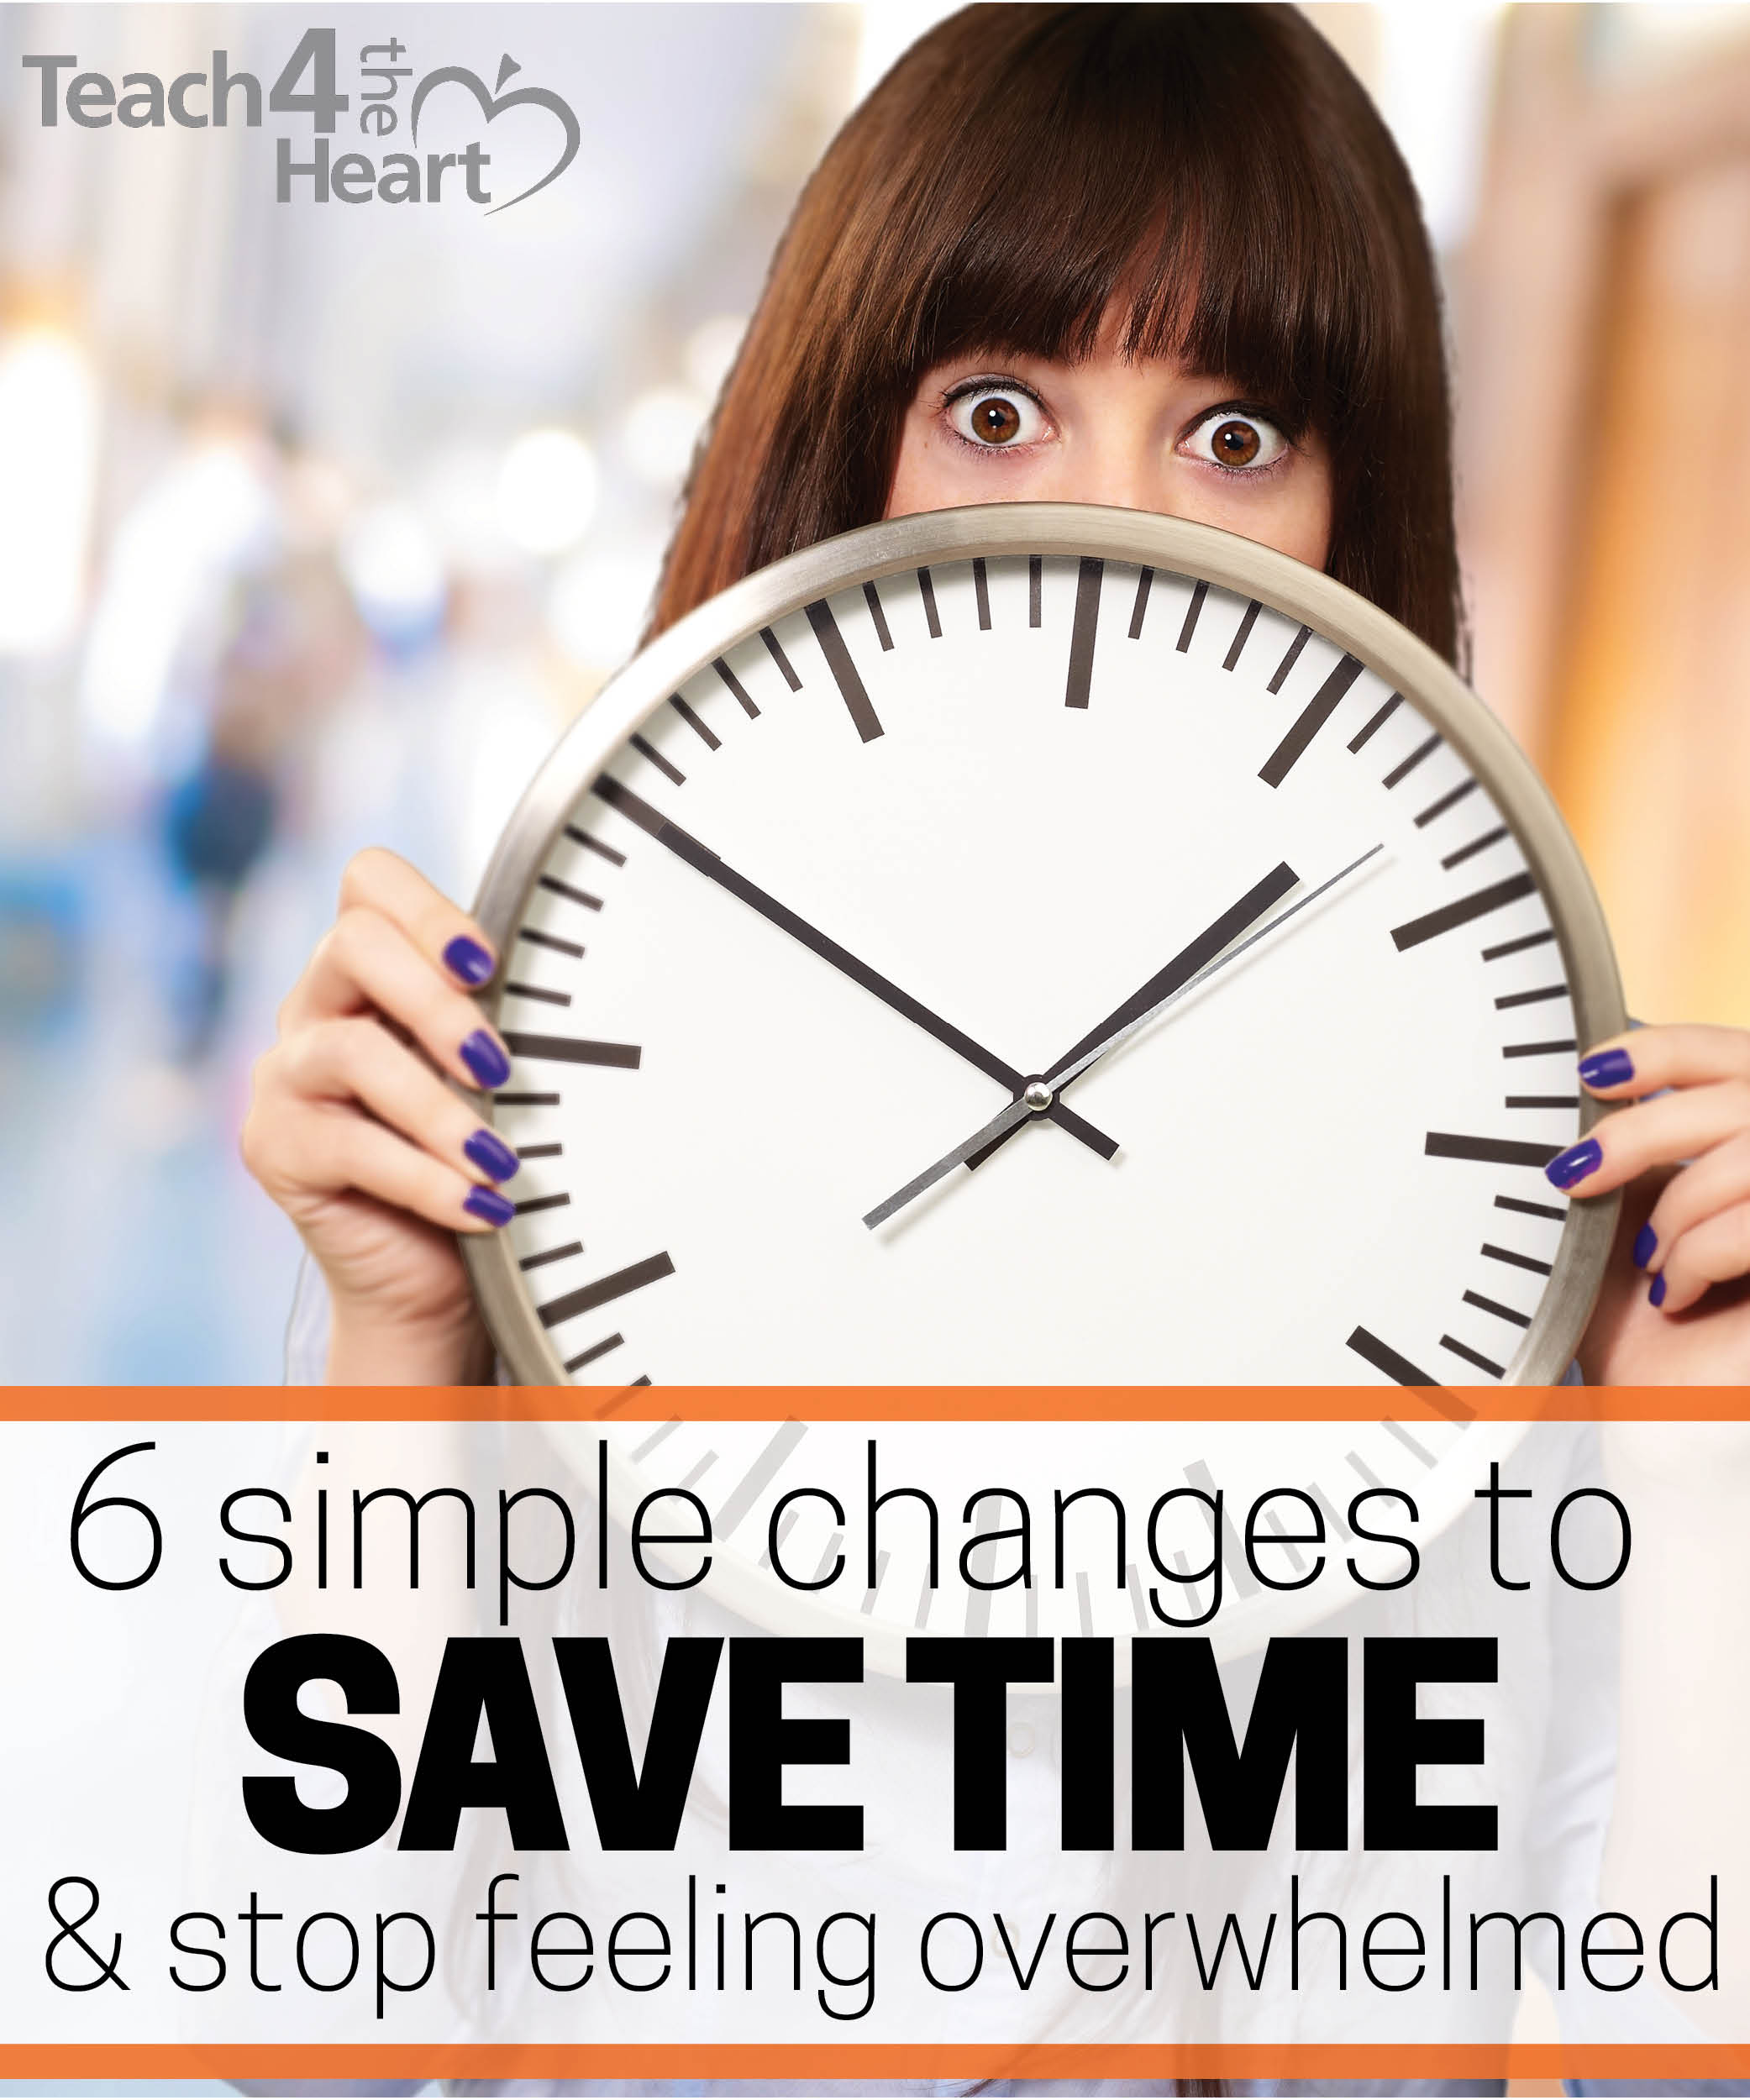 teachers save time and feel less overwhelmed